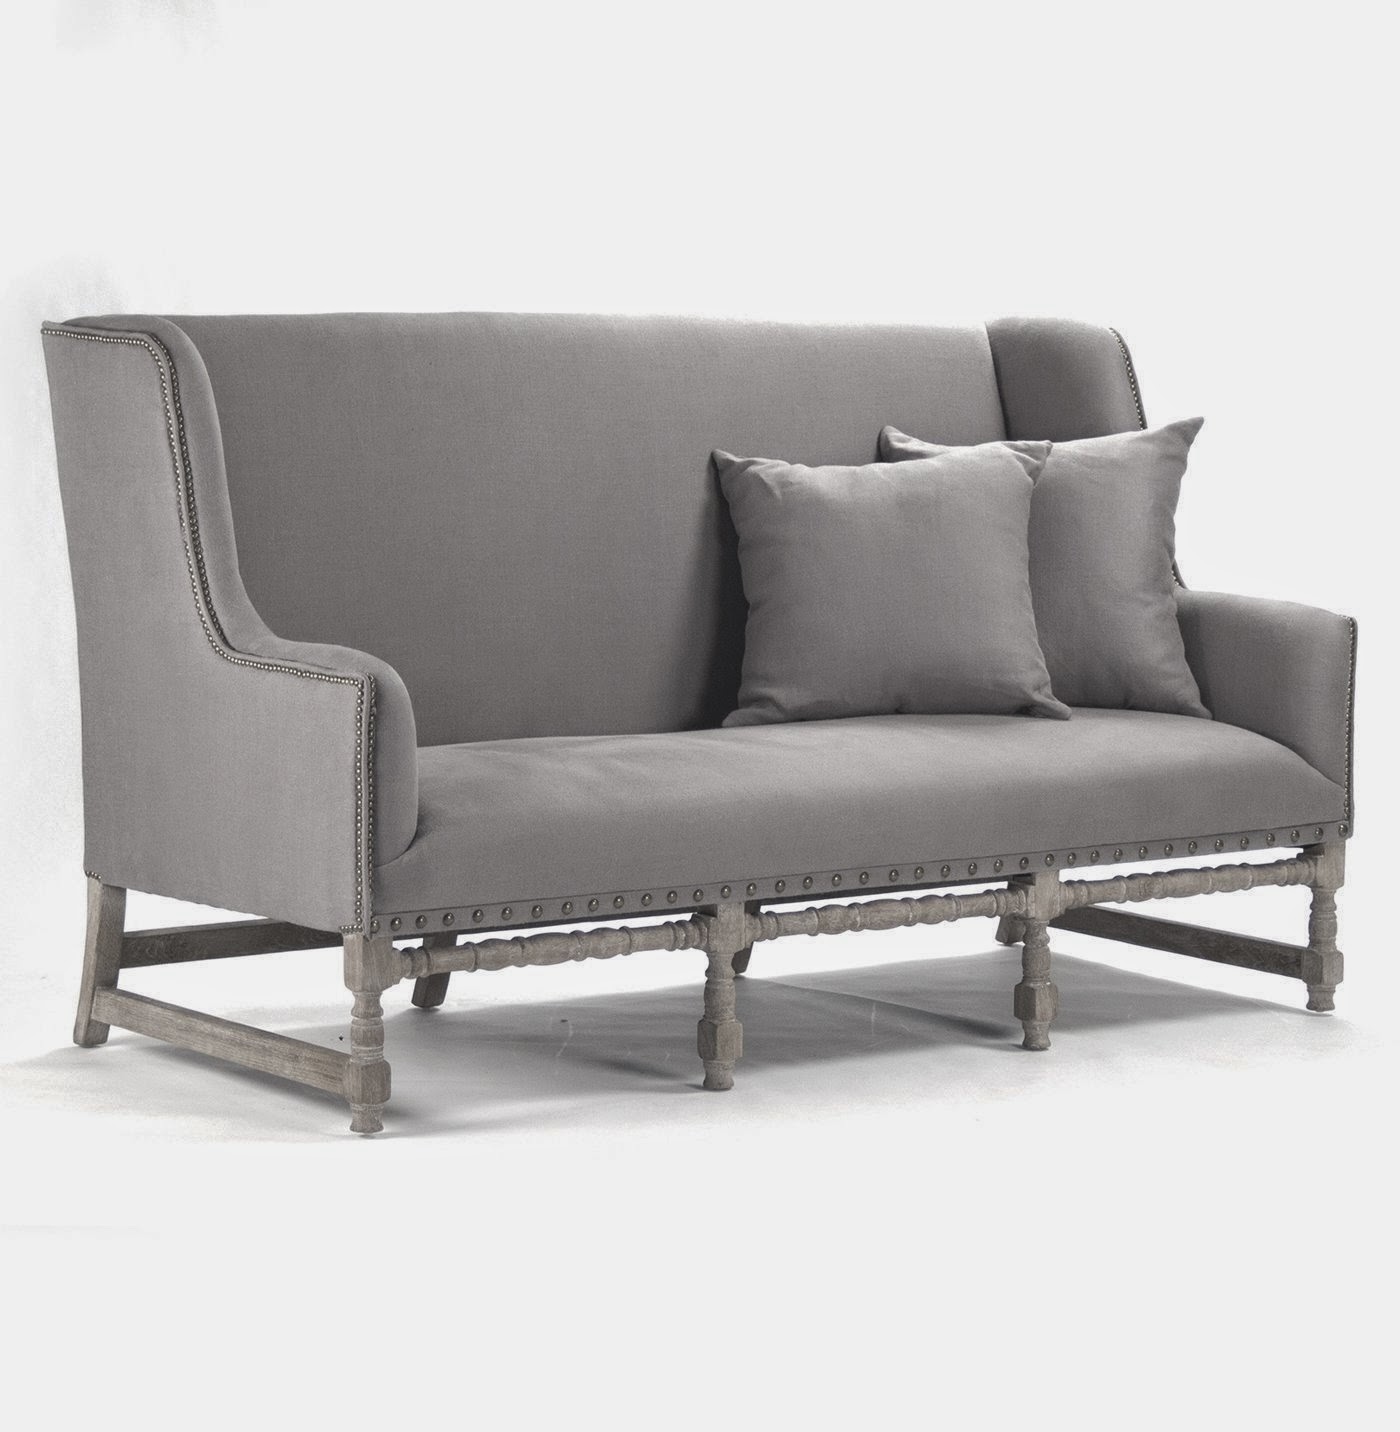 Grey Oversized Chair Oversized Couches Oversized Deep Couches